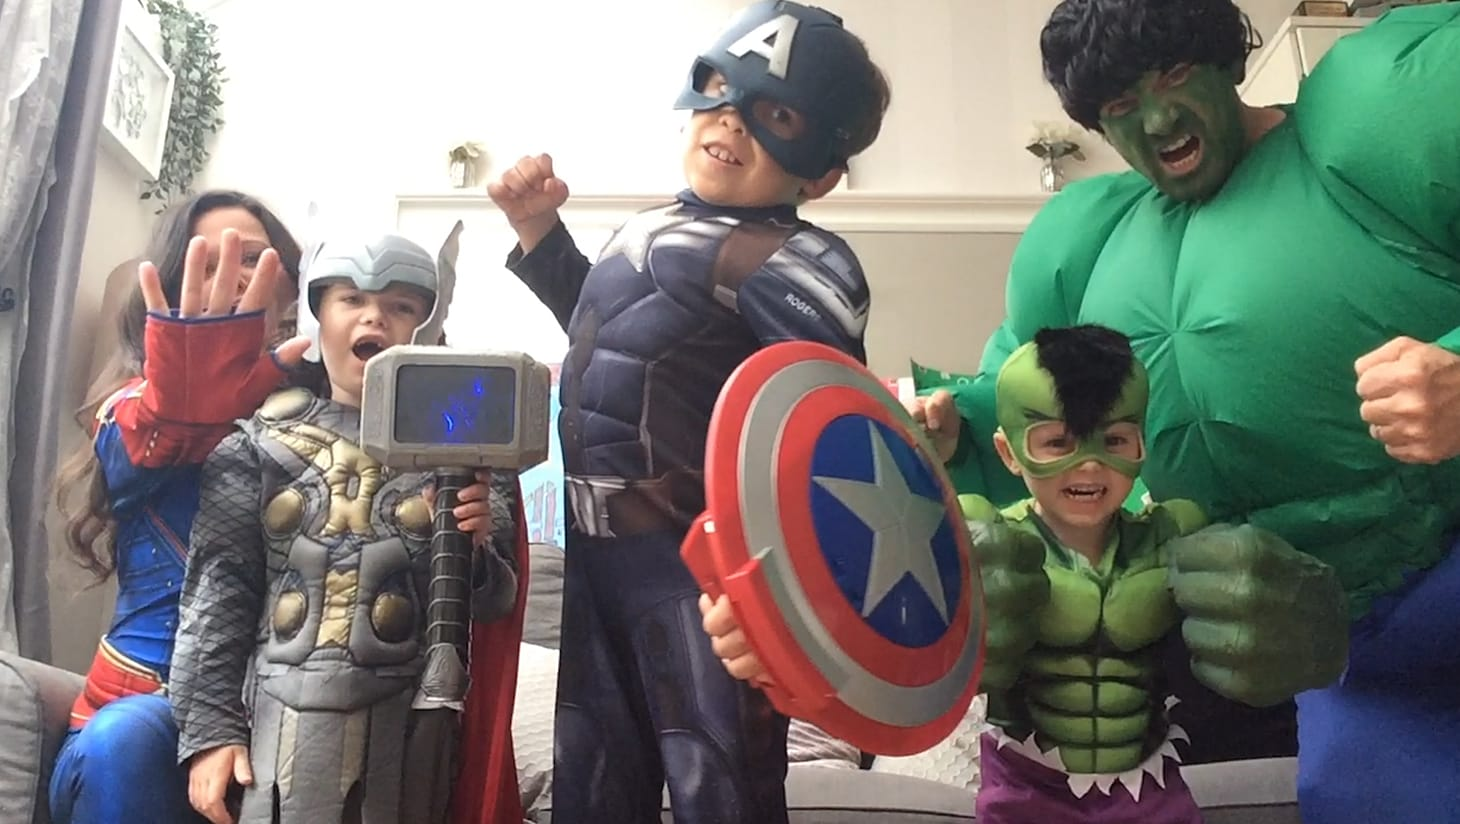 A family dressed as the Avengers